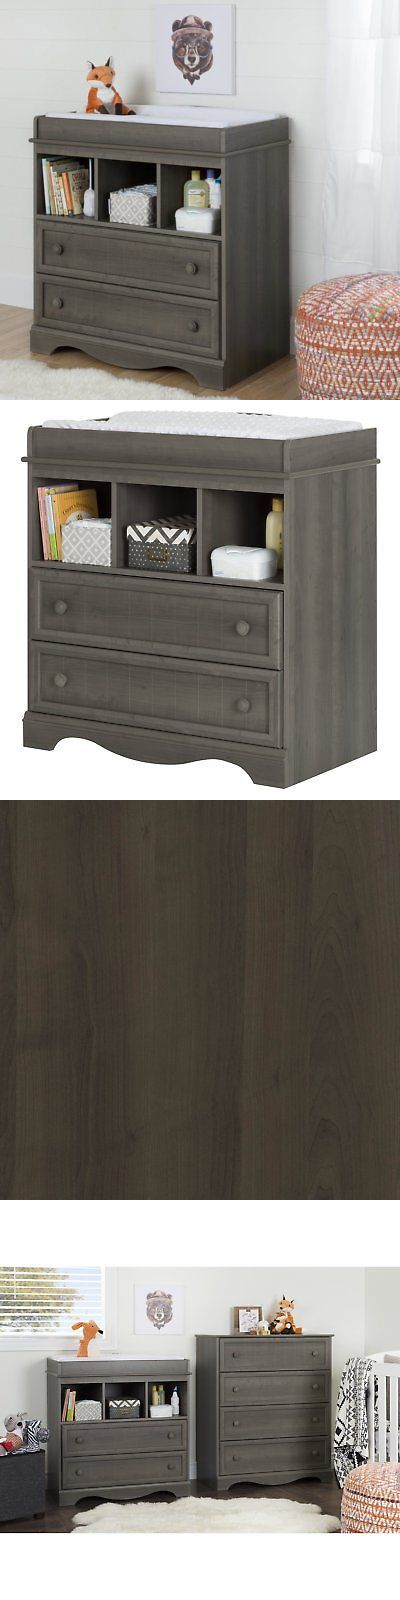 South Shore Savannah Changing Table With Drawers, Gray Maple | Changing  Tables 20424 | Pinterest | Chats Savannah, Drawers And Gray